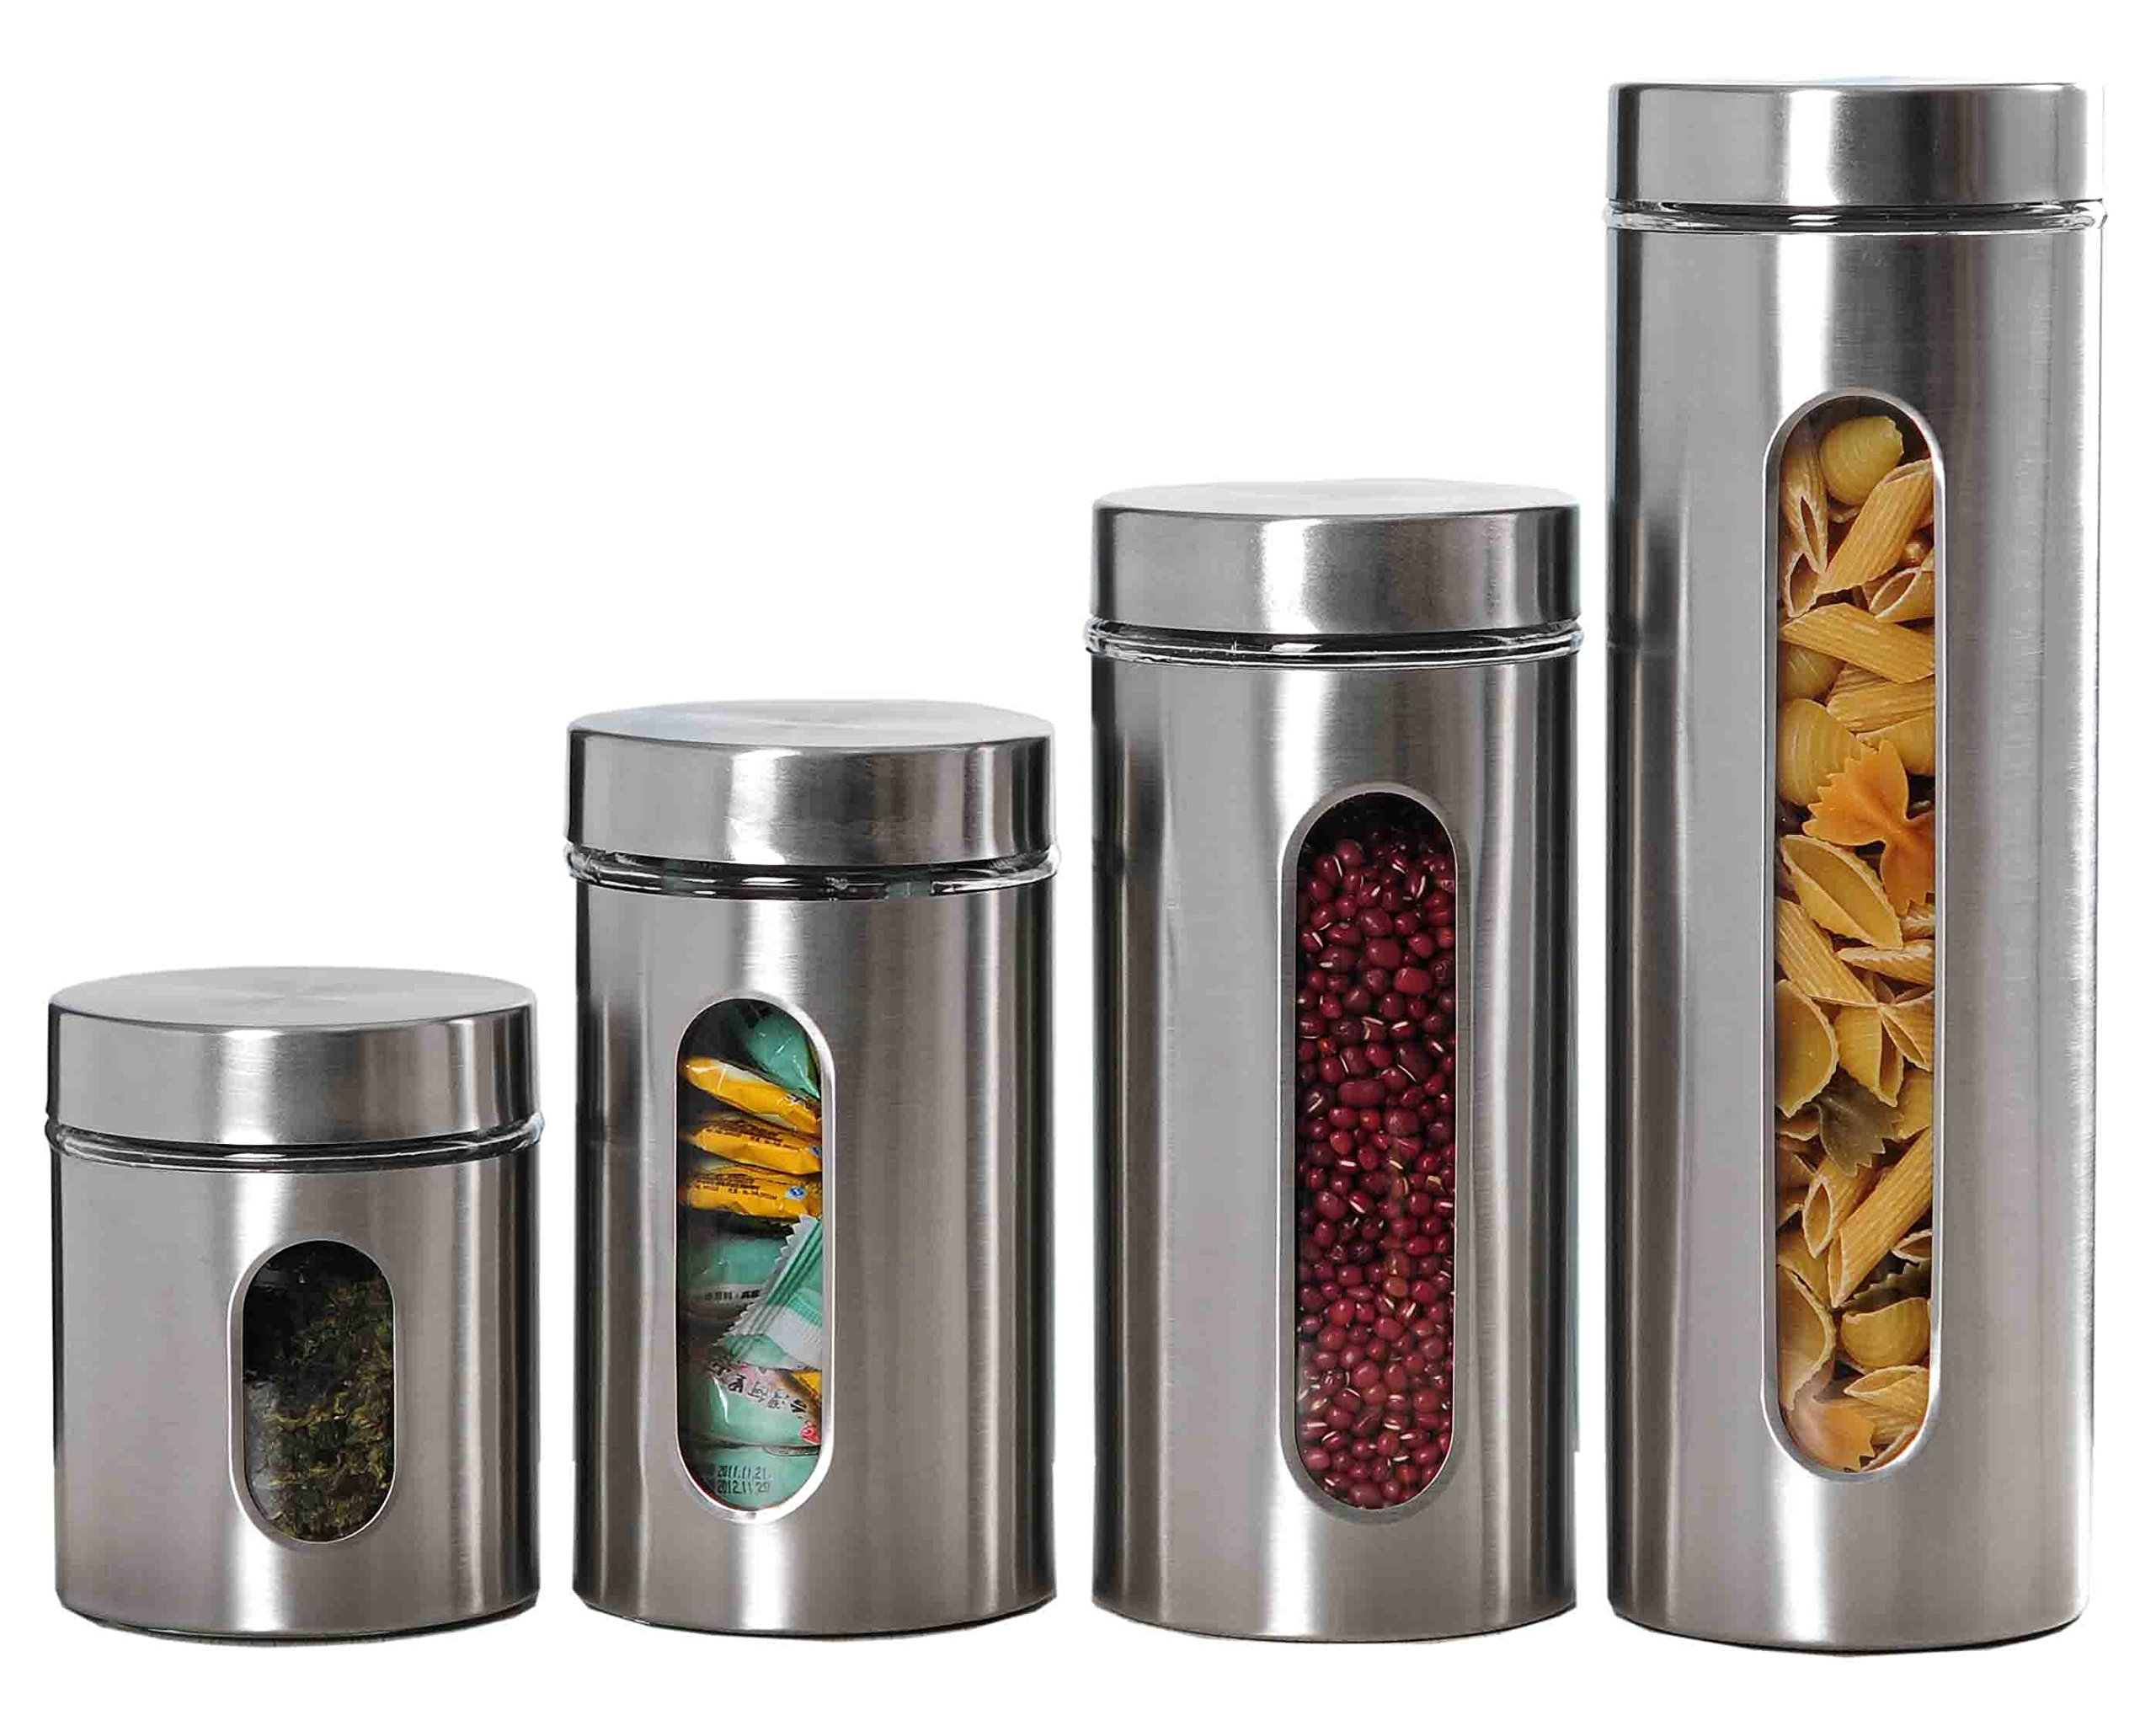 Home Basics 4 Piece Stainless Steel Canister Set with Windows